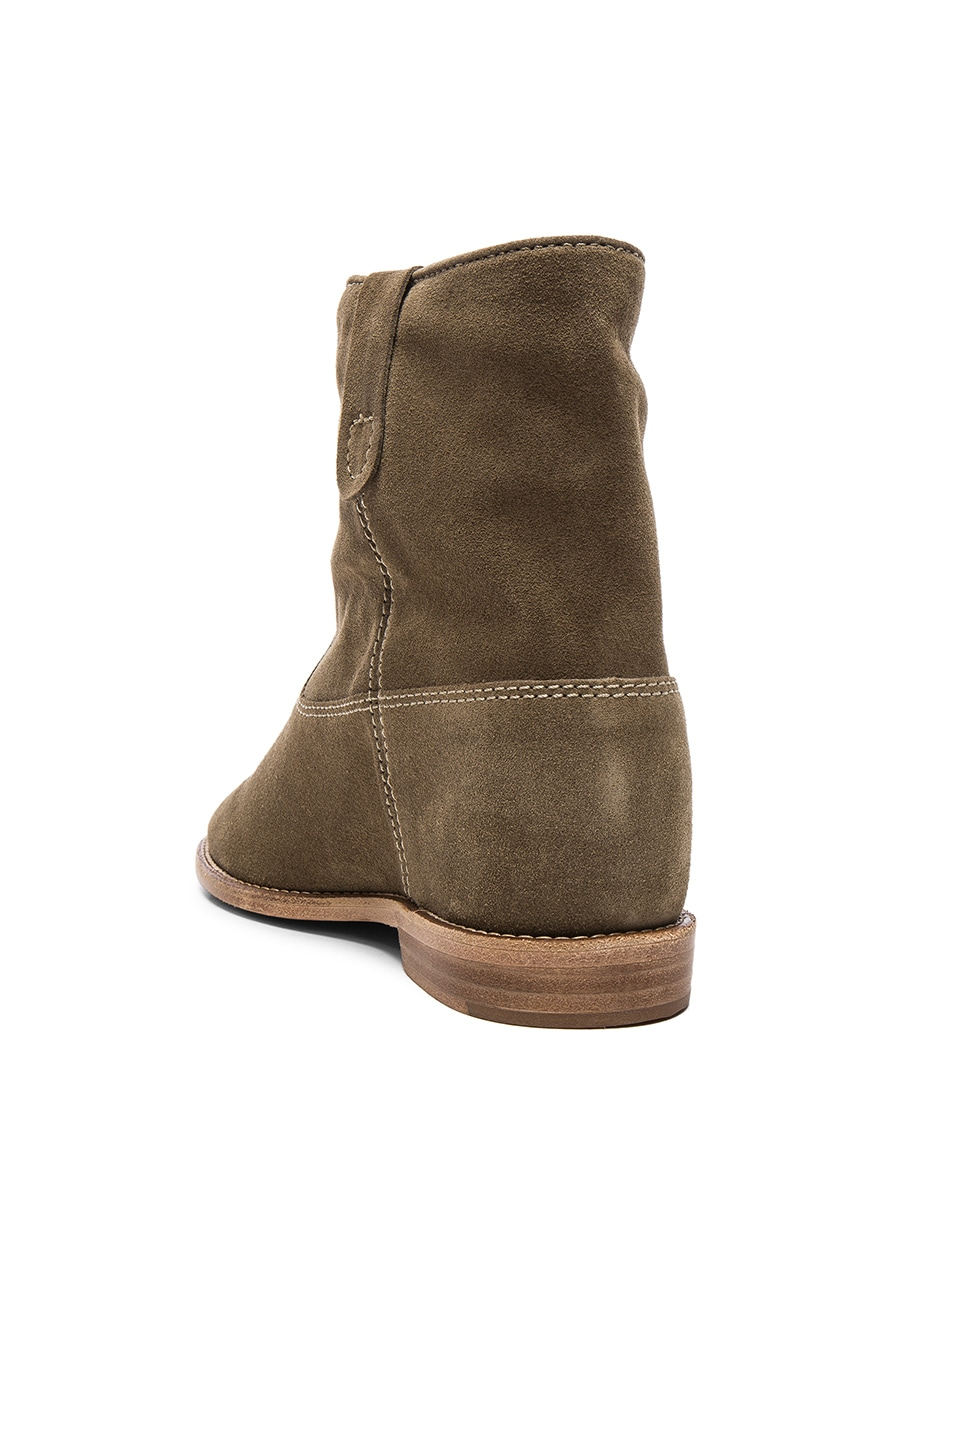 Image 3 of Isabel Marant Etoile Crisi Velvet Booties in Taupe